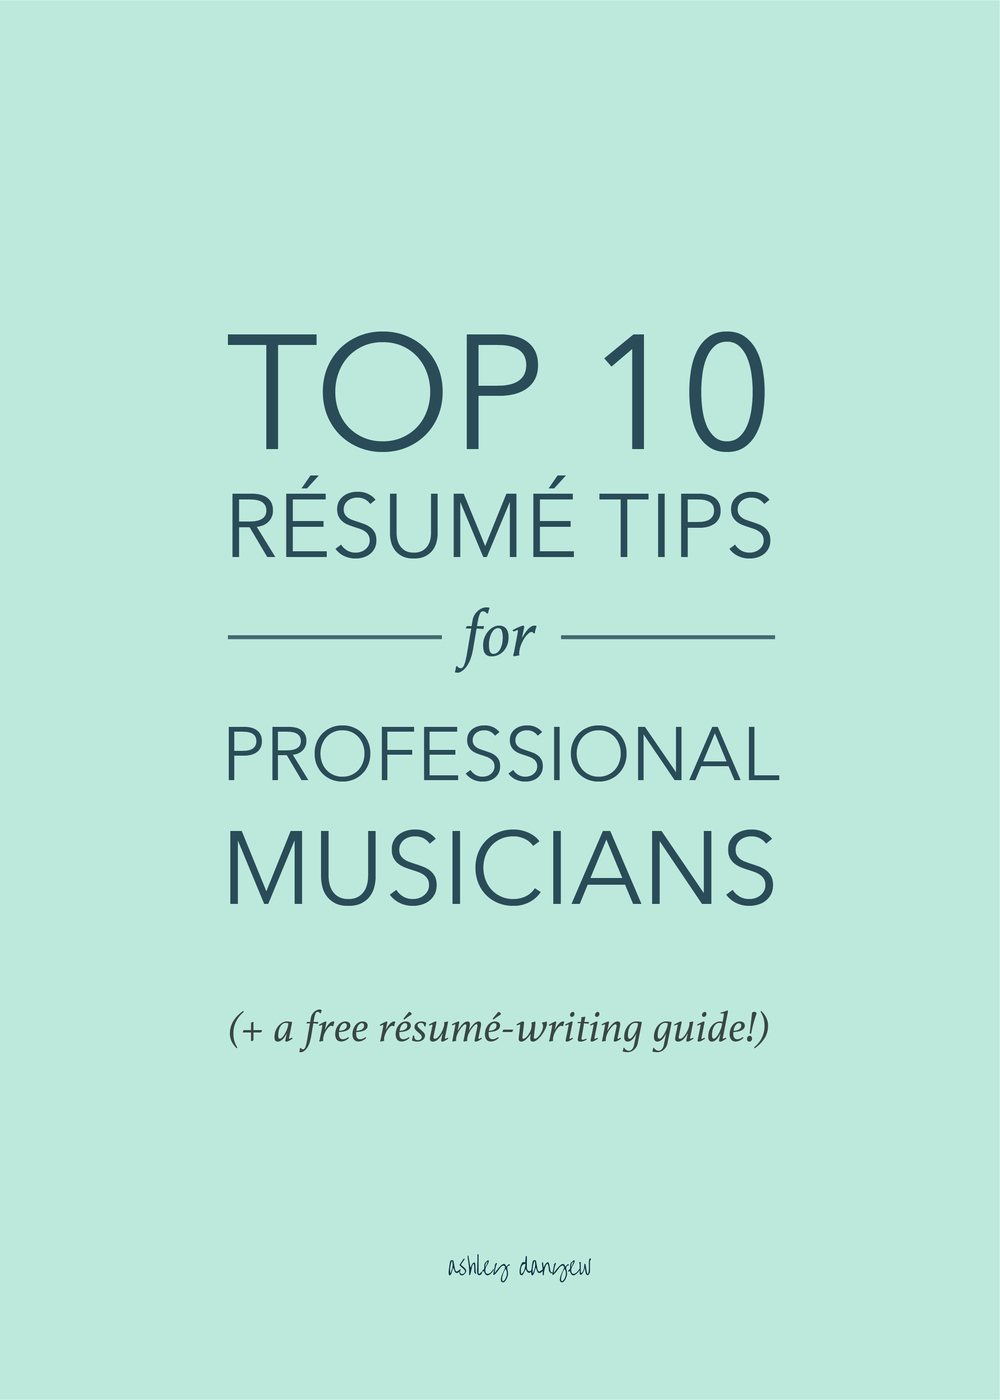 Copy of Top 10 Resume Tips for Professional Musicians